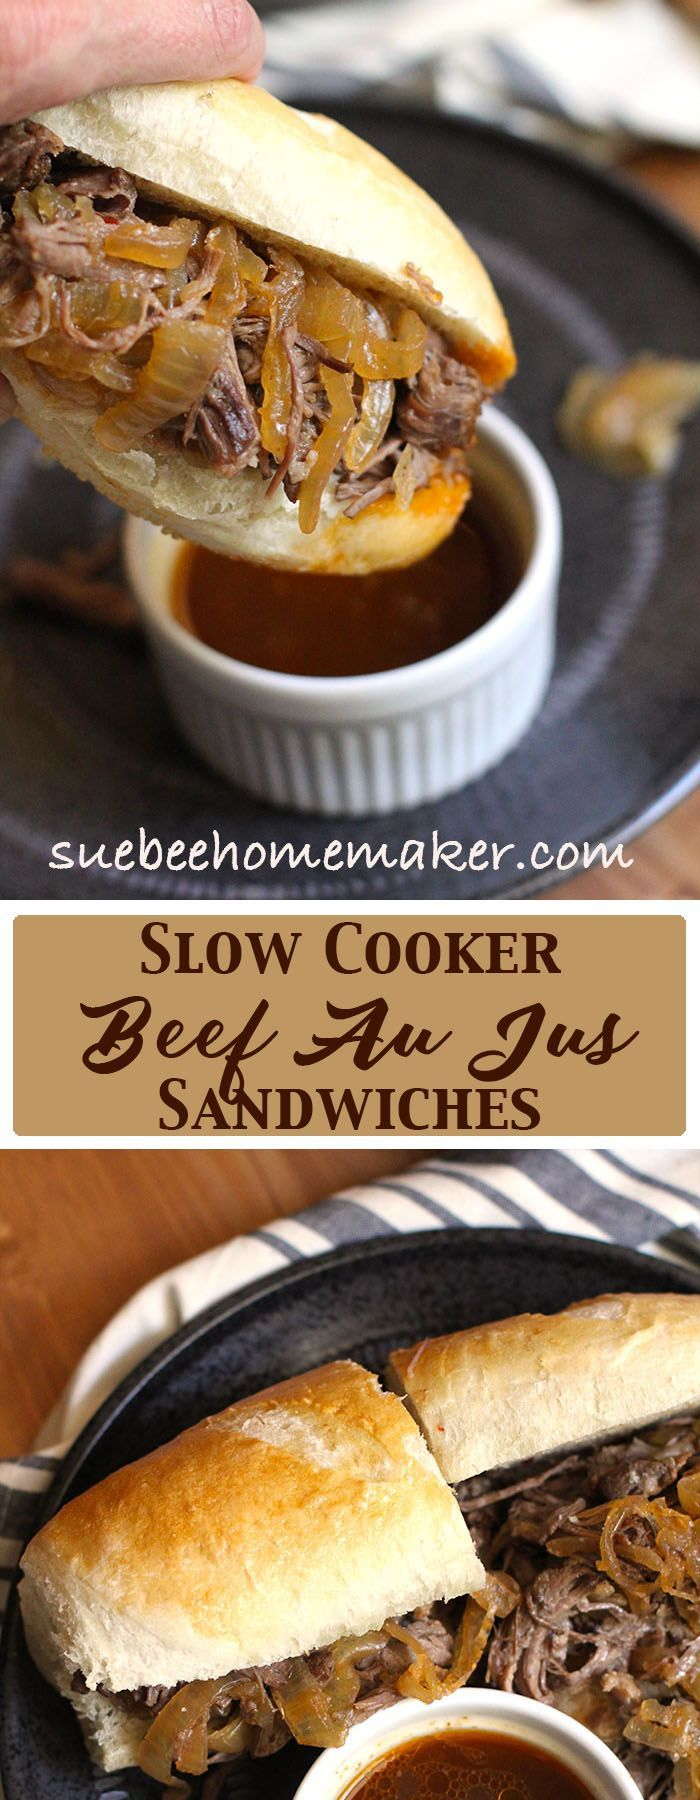 Slow Cooker Beef Au Jus Sandwiches are an easy dish to prepare. Slow cook a beef chuck roast all day long, combining onions and spices for flavor!